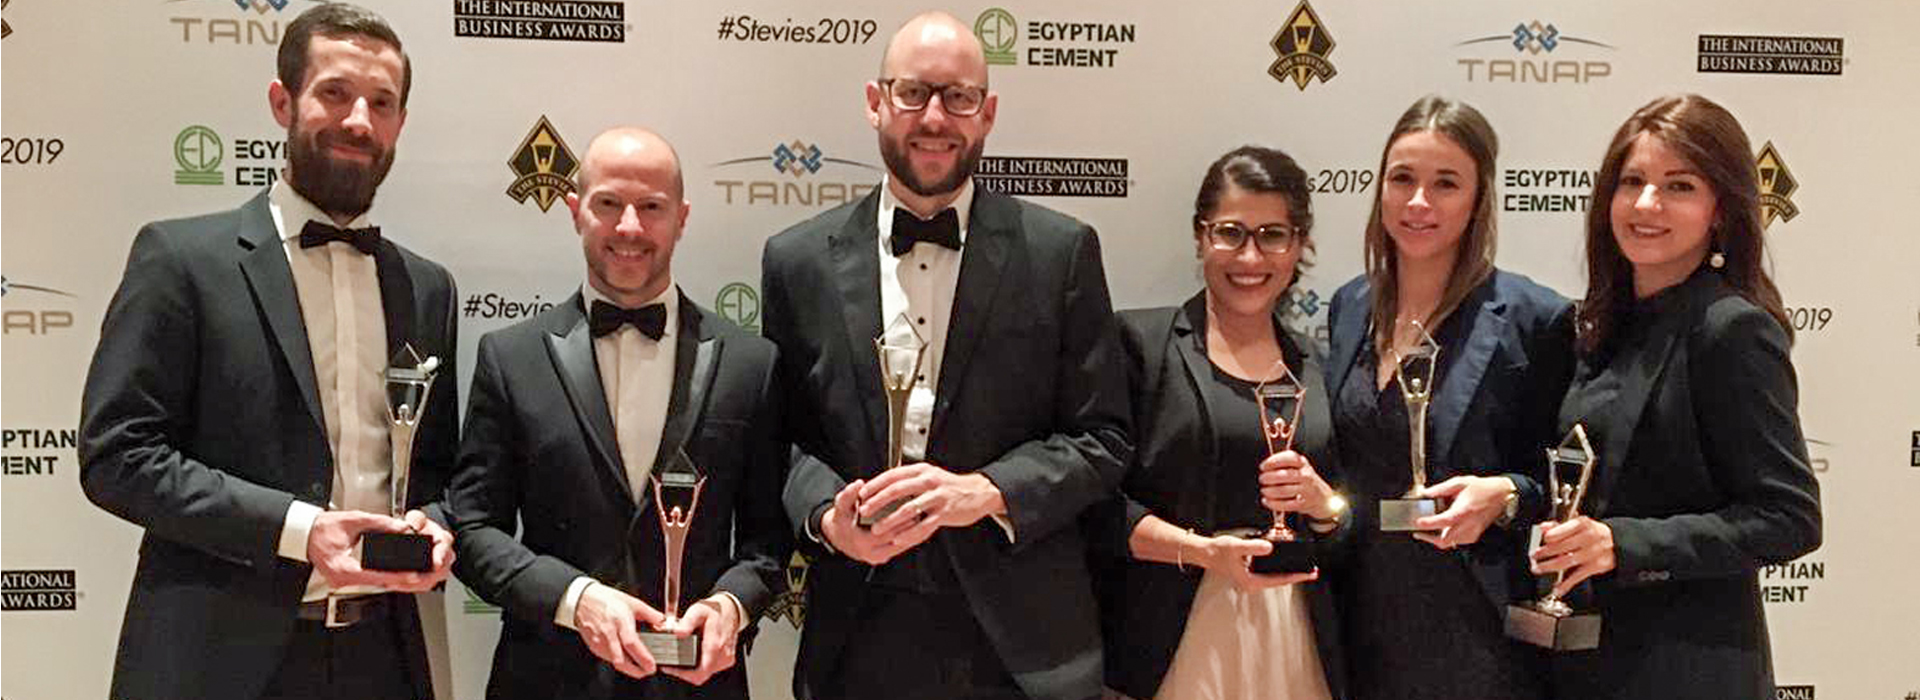 FIVE STEVIE AWARDS FOR ZF AFTERMARKET AND NUFFIELD HEALTH